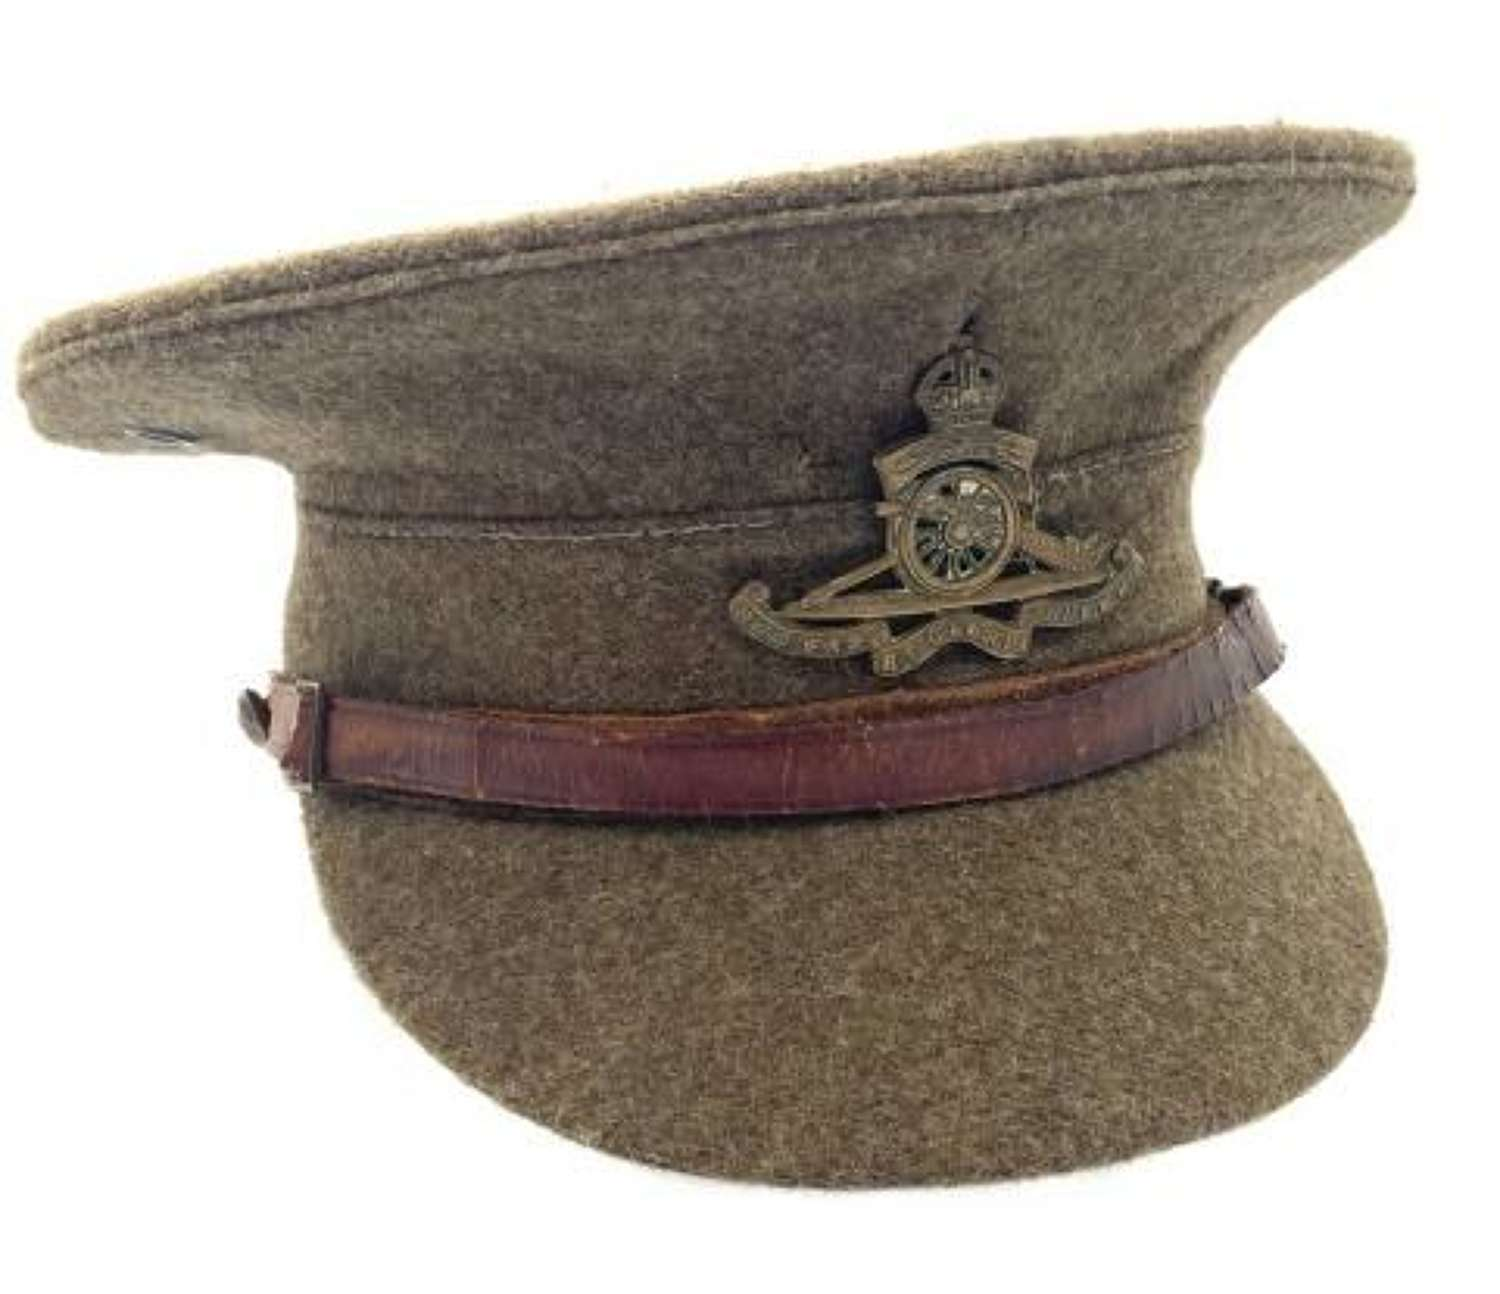 Original 1922 Pattern Ordinary Ranks Peaked Cap